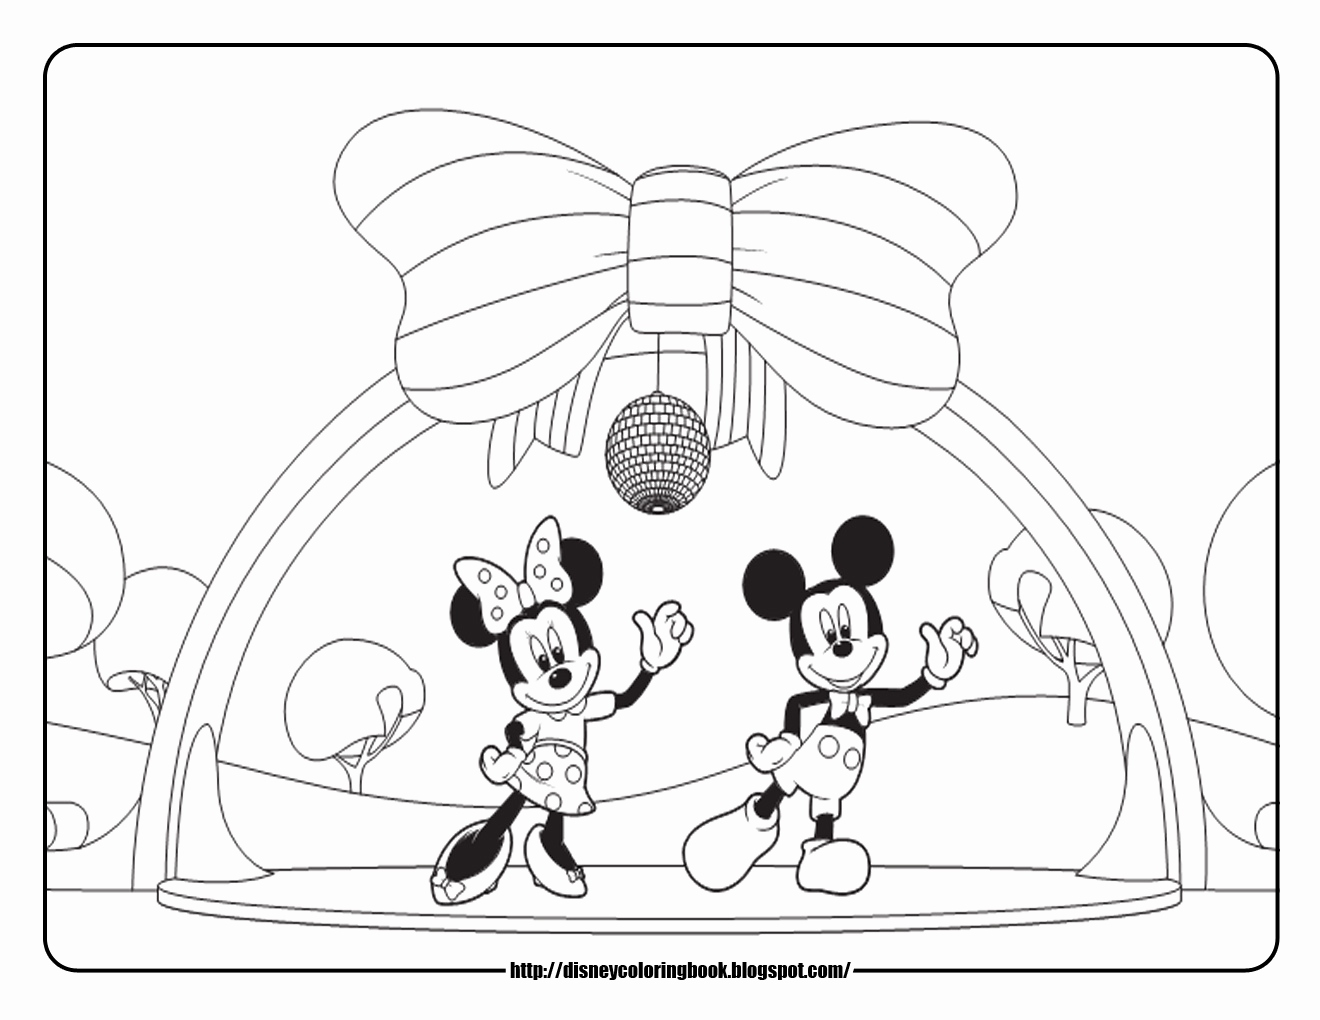 1320x1020 Minnie Mouse Printable Coloring Pages Lovely Minnie Mouse Bow